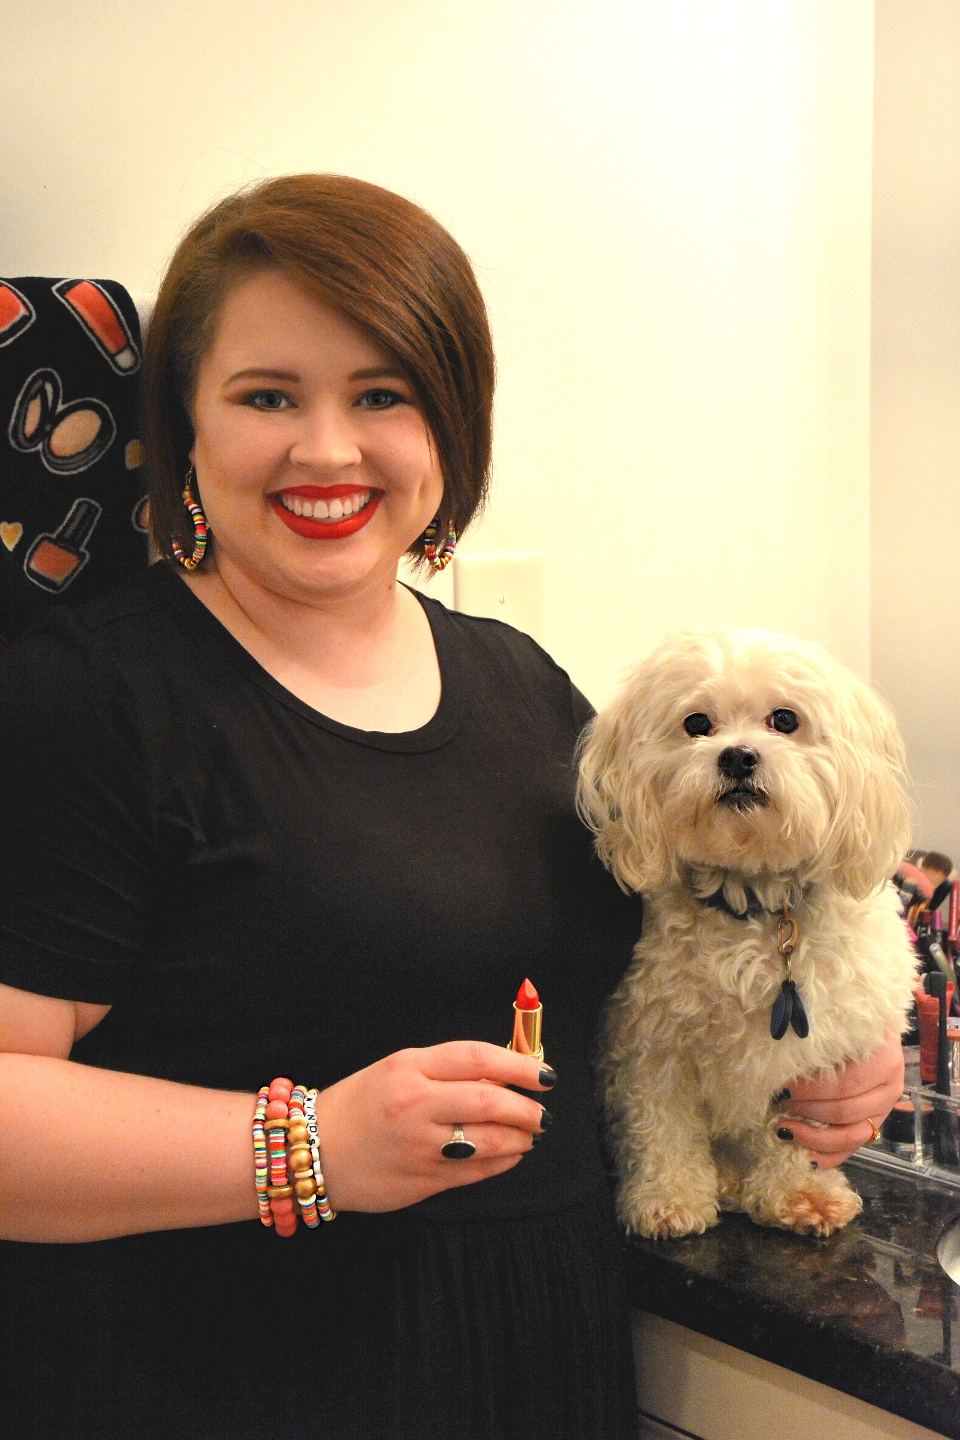 The Empowered Women Series: How to Rock a Red Lip with Hannah Dawson - I'm Fixin' To - @mbg0112 | Hannah Hardy by popular NC beauty blog, I'm Fixin' To: image of Hannah Hardy applying red lipstick and standing next to her dog.